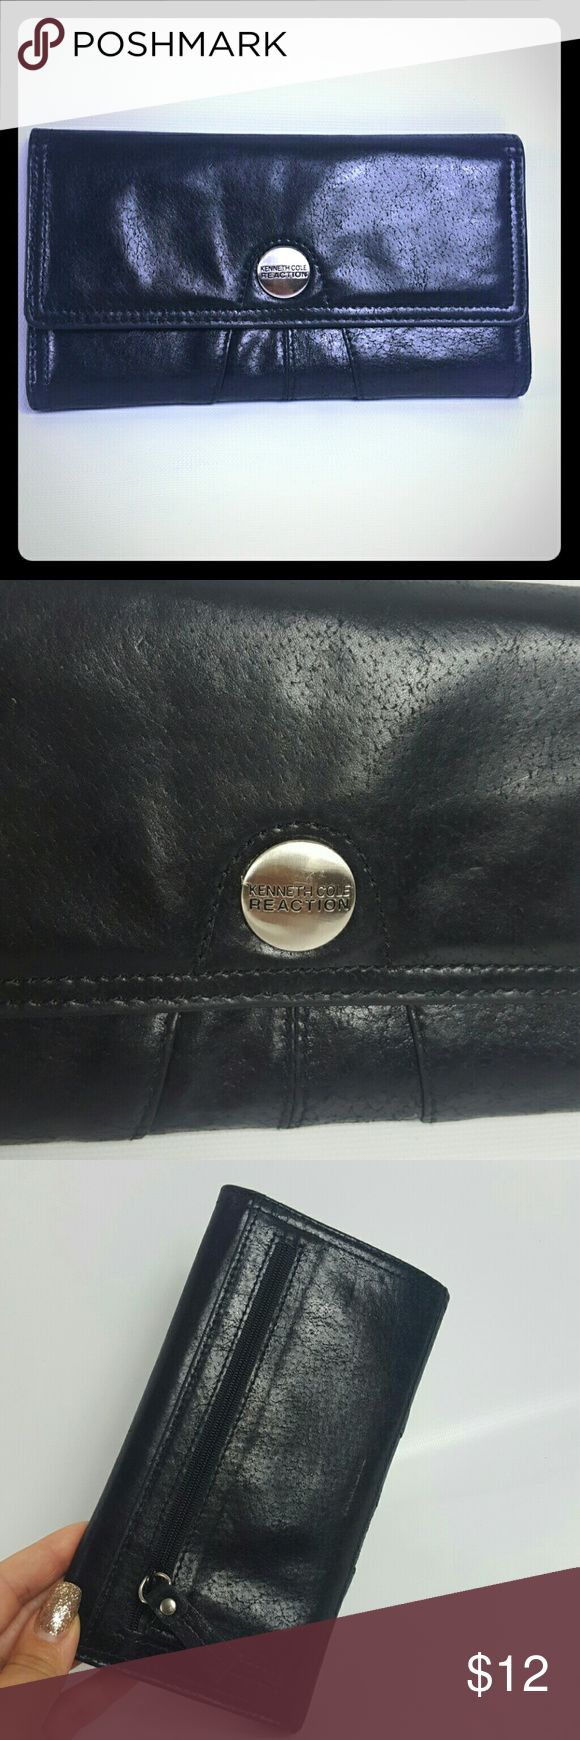 Kenneth Cole Reaction wallet Condition 8 /10, genuine leather wallet, manmade interior, few small cracks inside, check the last picture, many pockets, other than that it's in great shape. Dimensions Height 7', Length 4',if you have any questions or you want to request more pictures, don't hesitate to ask me. Thanks for your time. Have a great day. KISS Kenneth Cole Reaction Bags Wallets